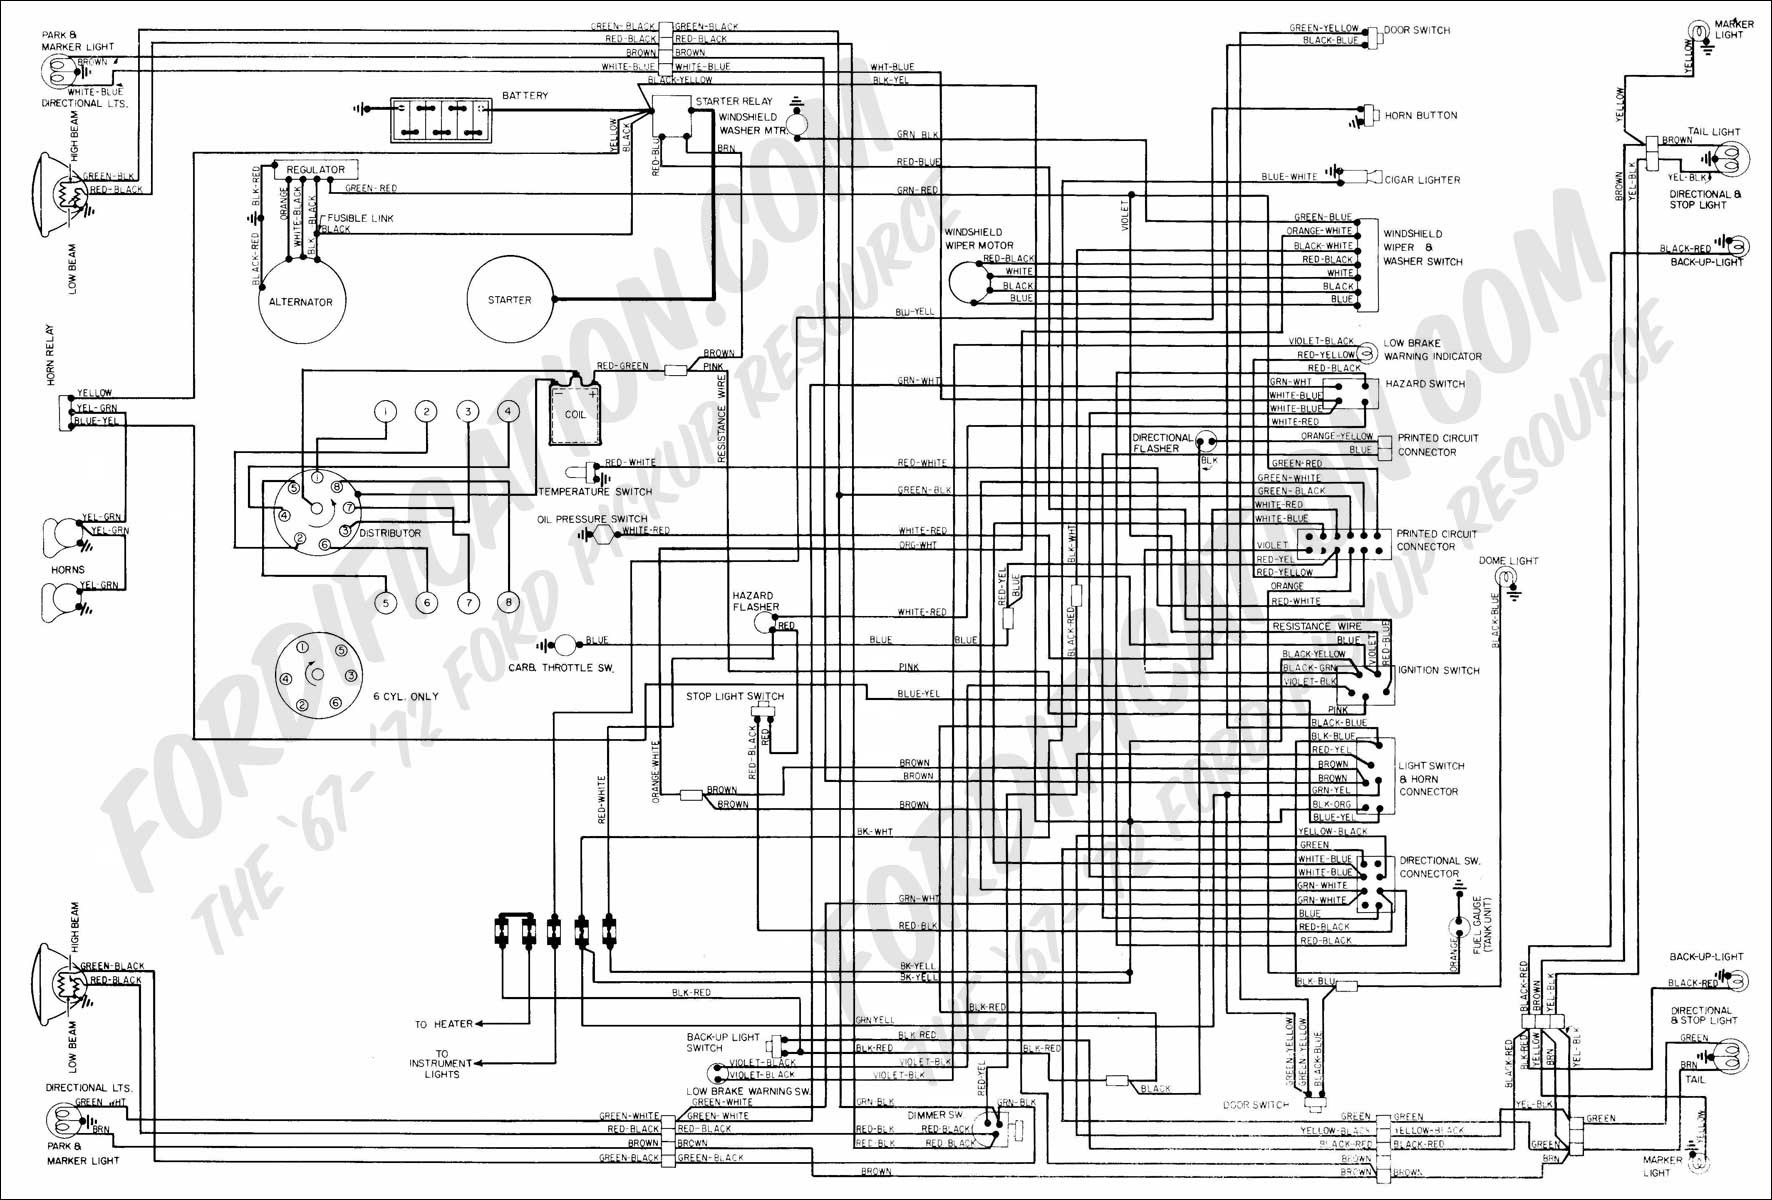 1987 Ford Mustang Engine Wiring Diagram Library Escape 2006 Ranger Also Fuse Box